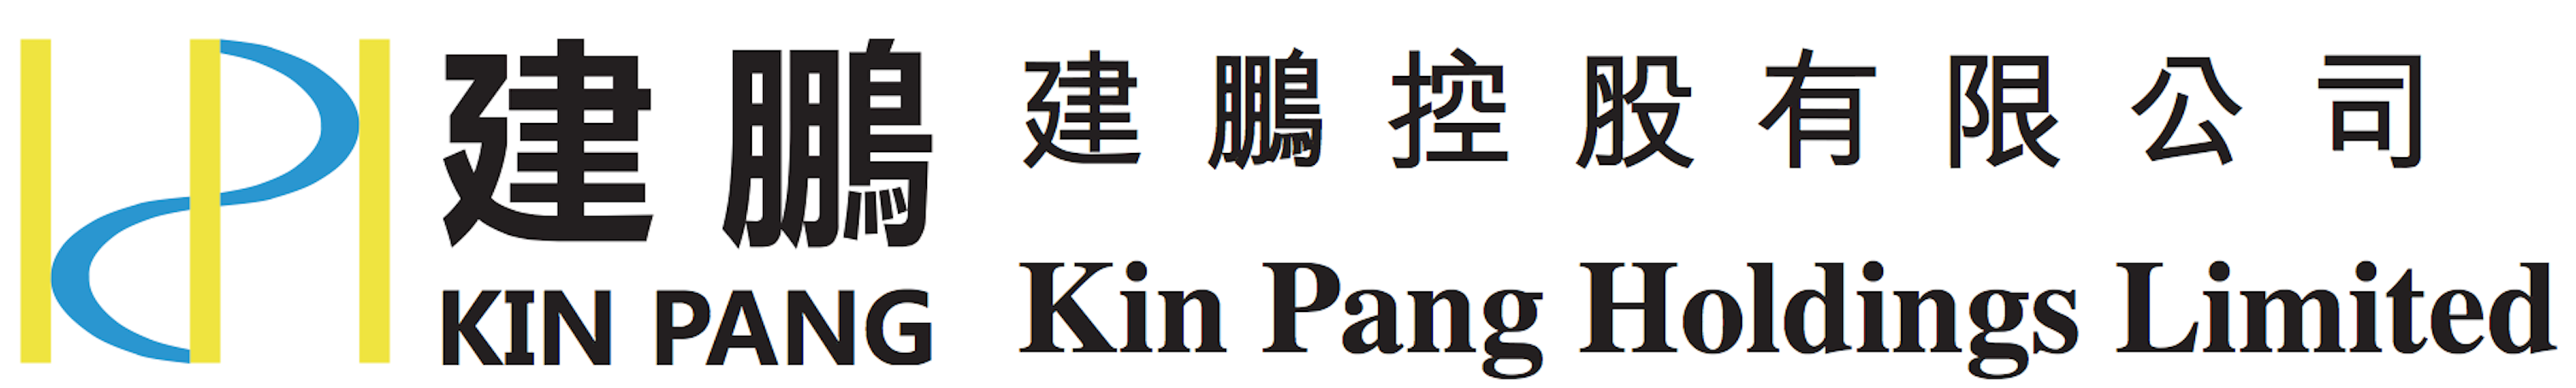 KIN PANG HOLDINGS LIMITED